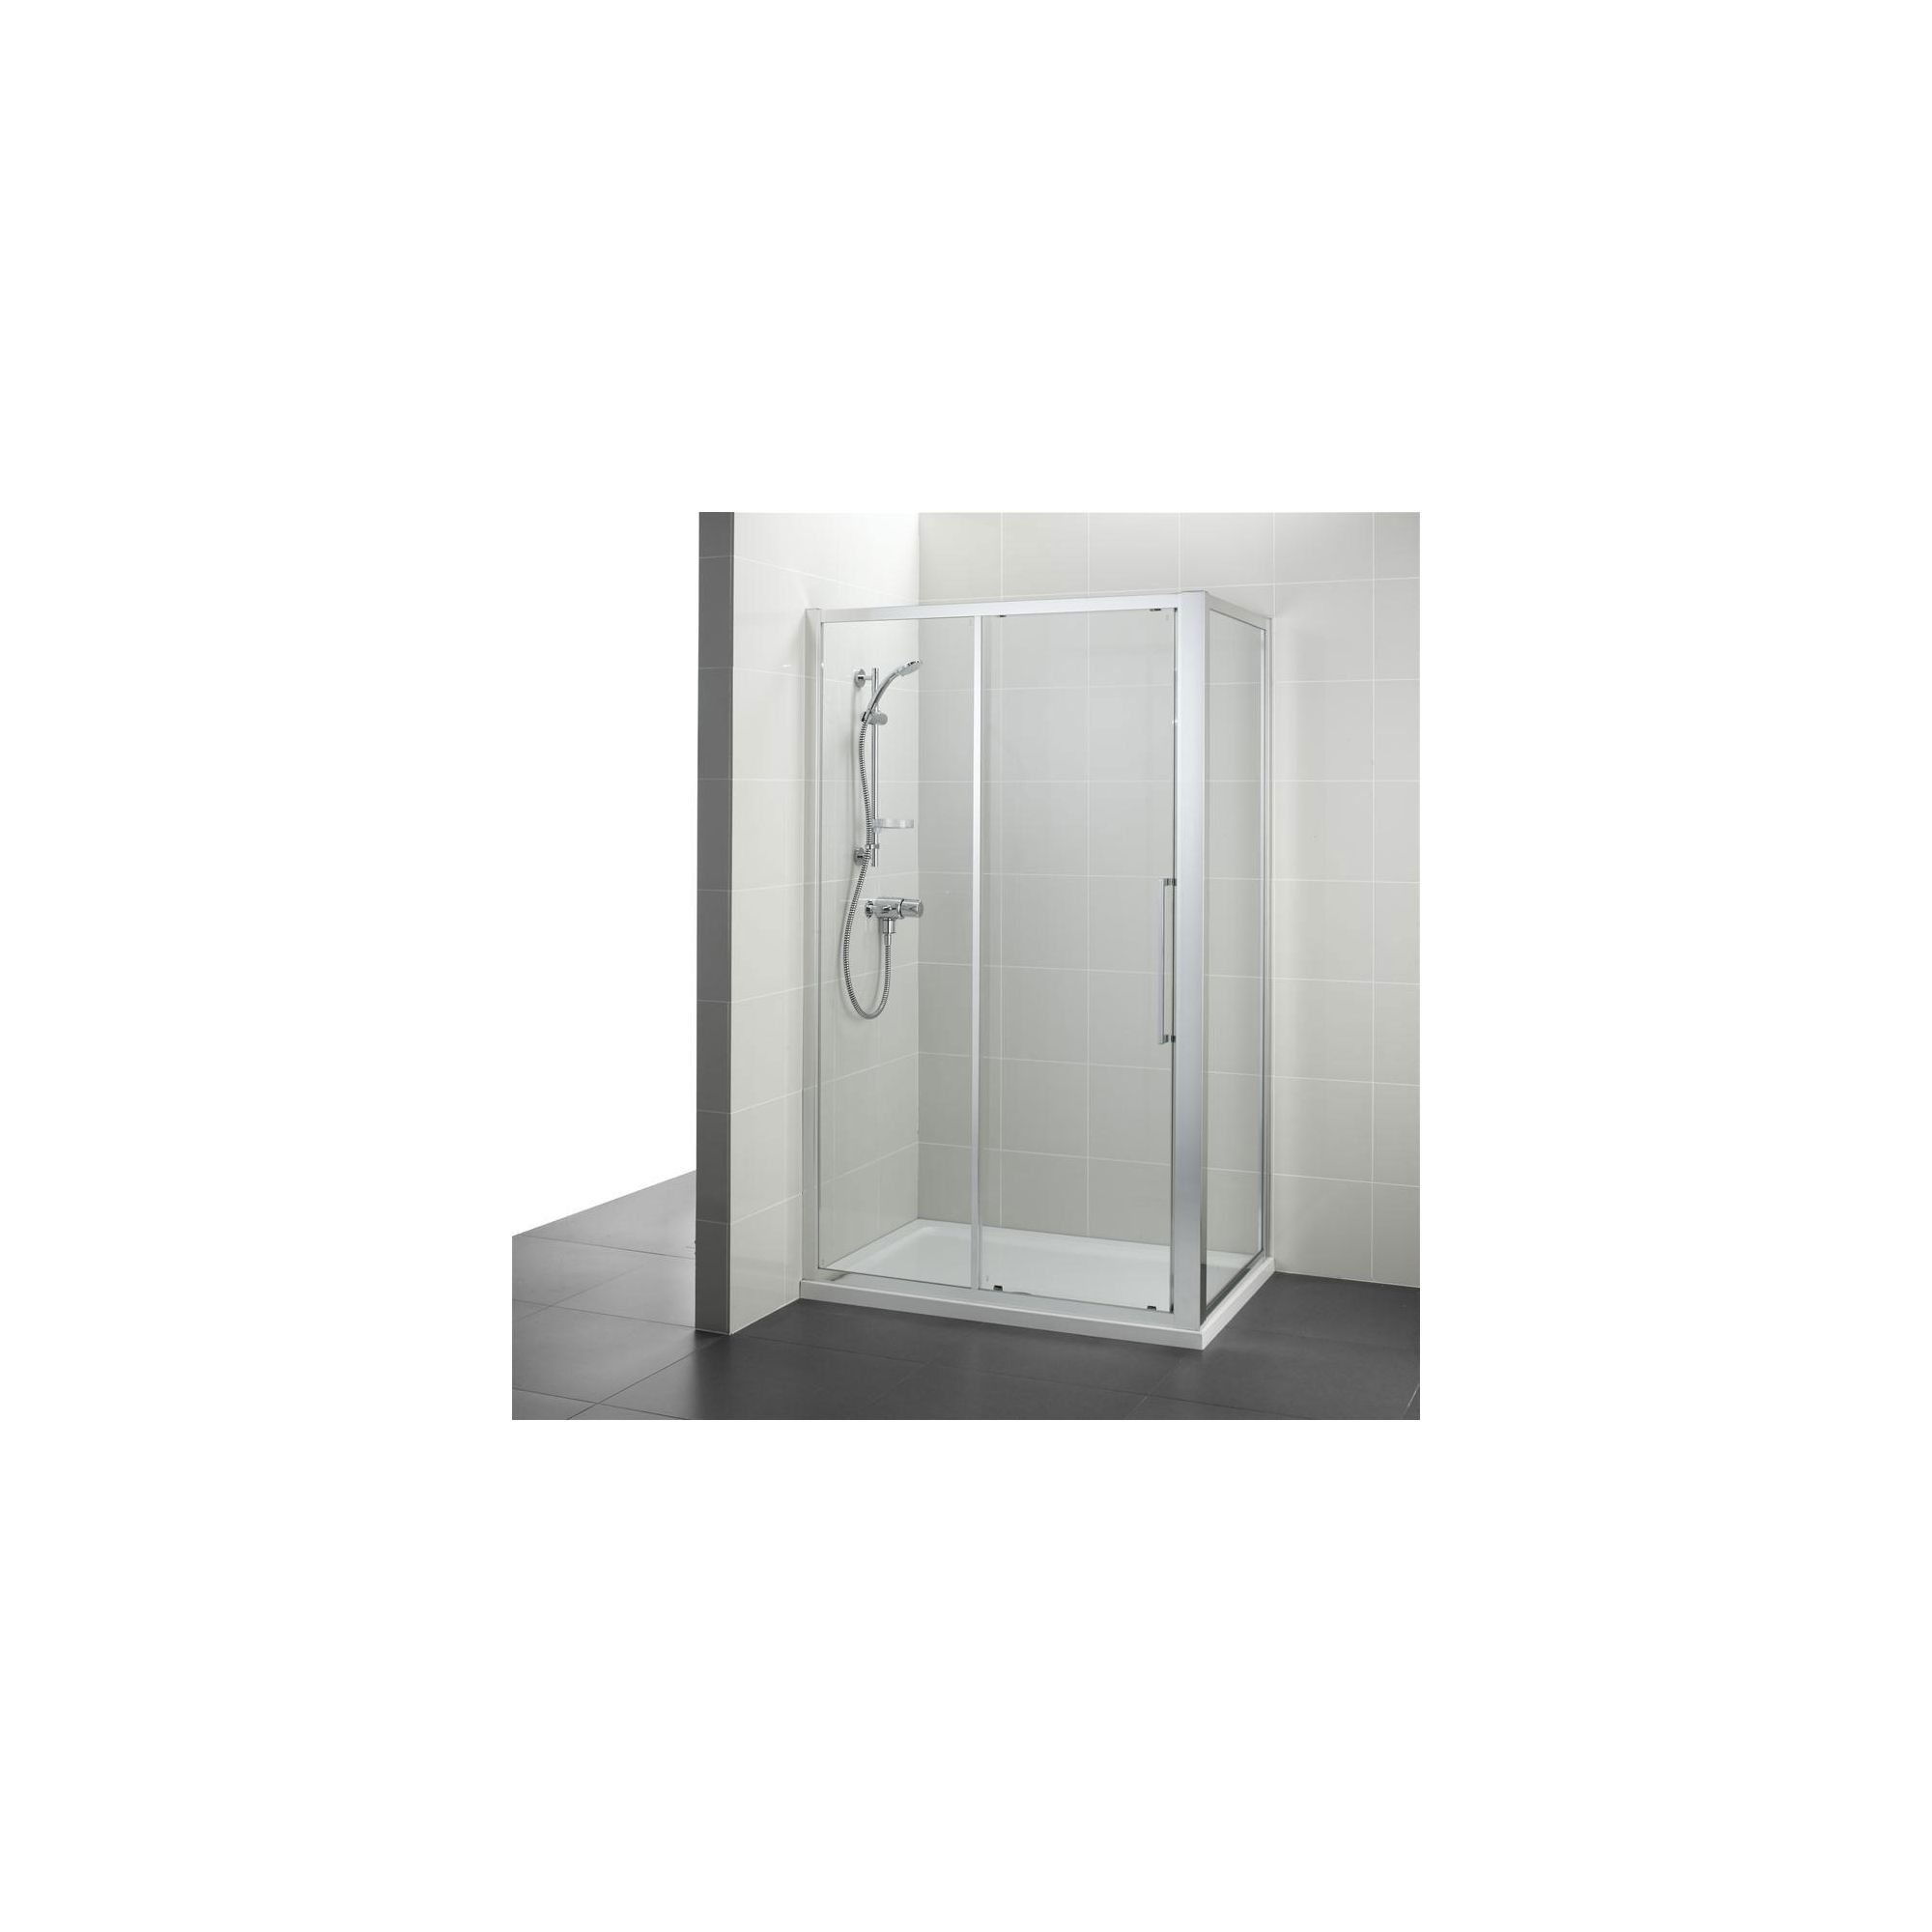 Ideal Standard Kubo Bi-Fold Door Shower Enclosure, 900mm x 760mm, Bright Silver Frame, Low Profile Tray at Tesco Direct